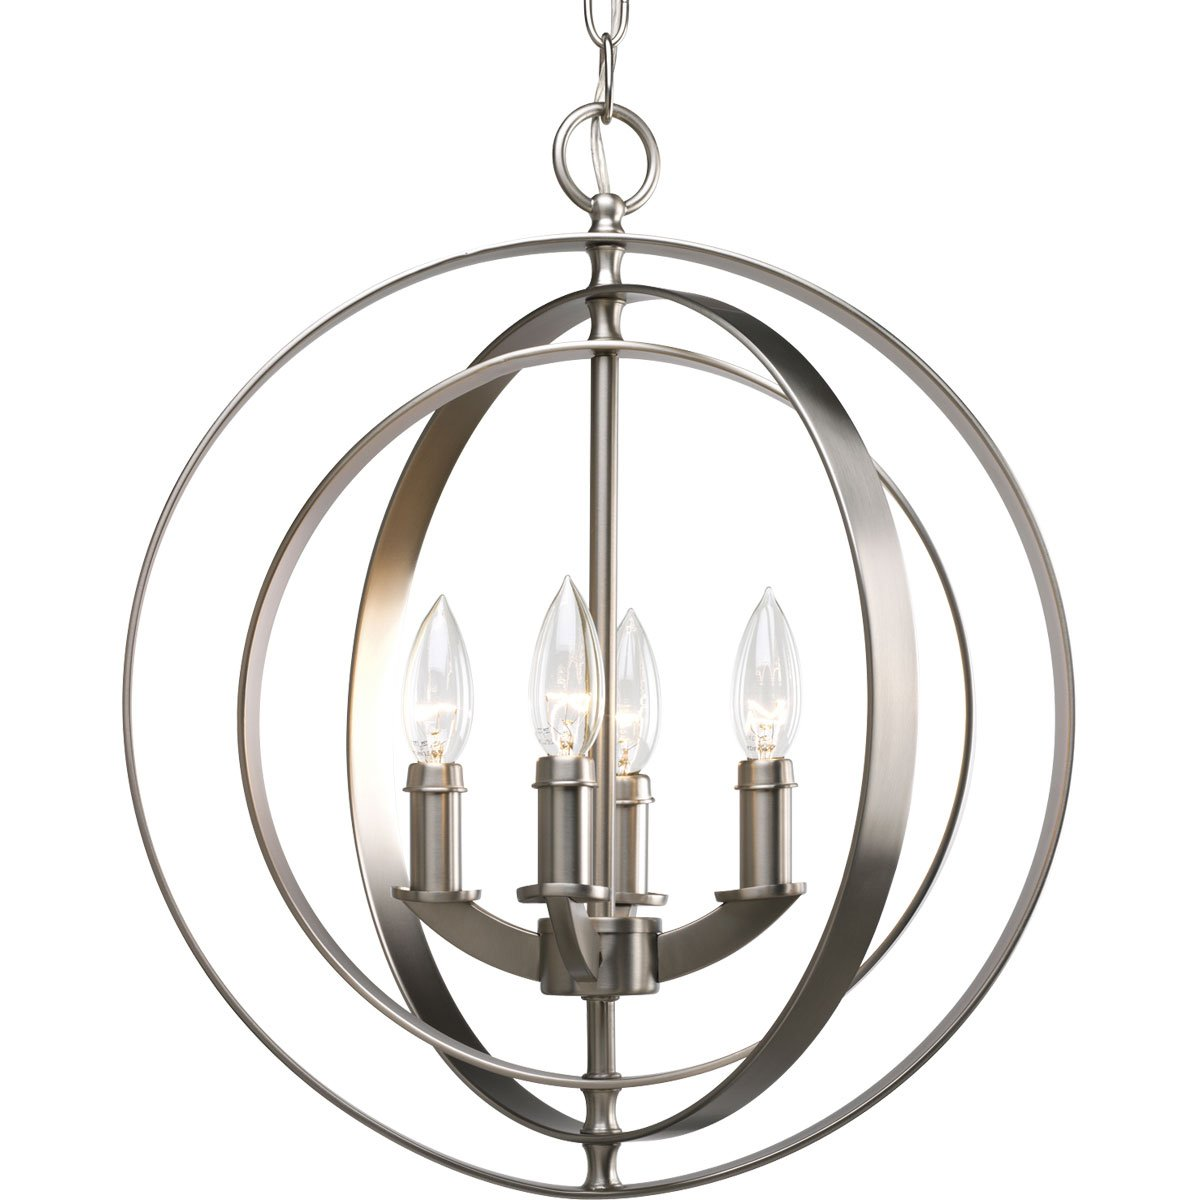 Progress Lighting P3827-126 4-Light Sphere Foyer Lantern with Pivoting Interlocking Rings Burnished Silver - Ceiling Pendant Fixtures - Amazon.com  sc 1 st  Amazon.com & Progress Lighting P3827-126 4-Light Sphere Foyer Lantern with ...